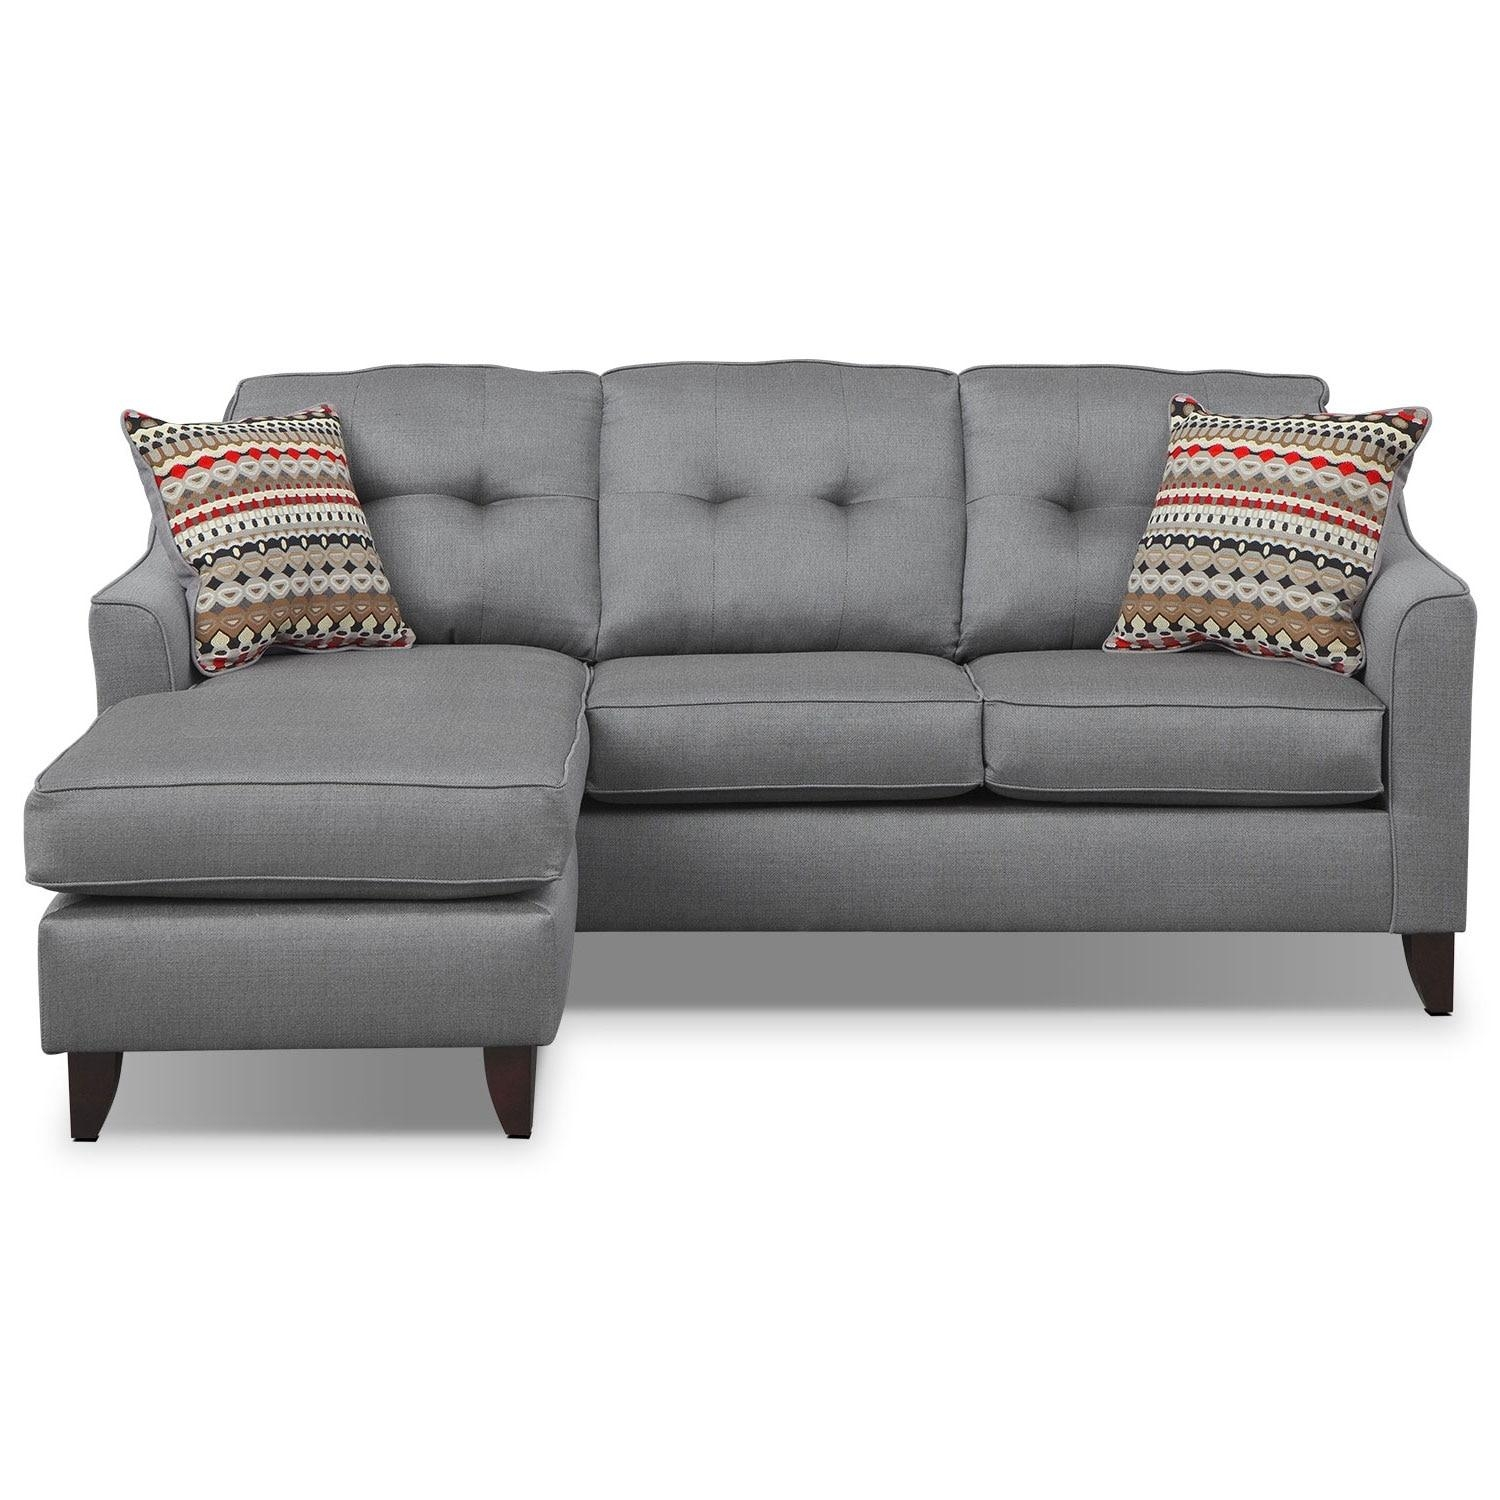 Marco Chaise Sofa – Gray | American Signature Furniture Regarding Chaise Sofas (View 2 of 20)